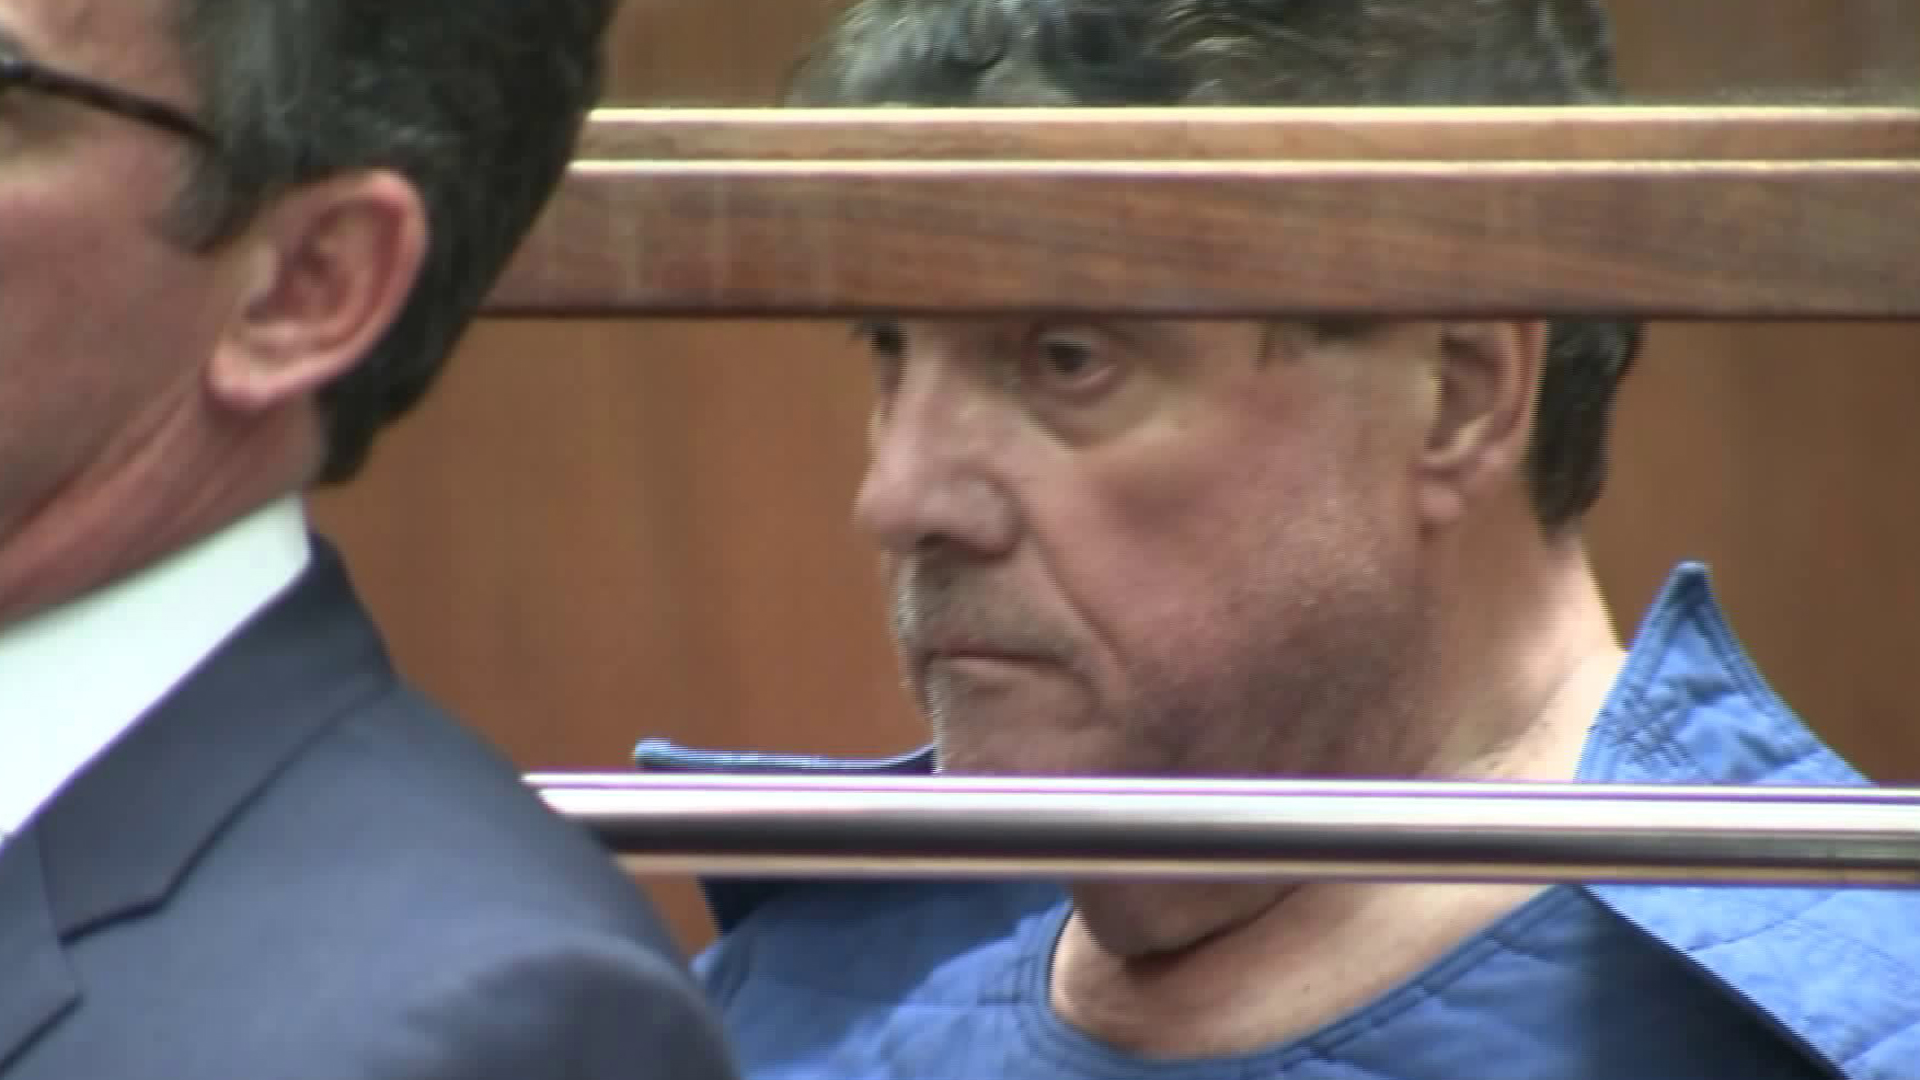 George Tyndall, the former USC gynecologist accused of sexually abusing several patients, appears in Los Angeles Superior Court on July 1, 2019. (Credit: KTLA)